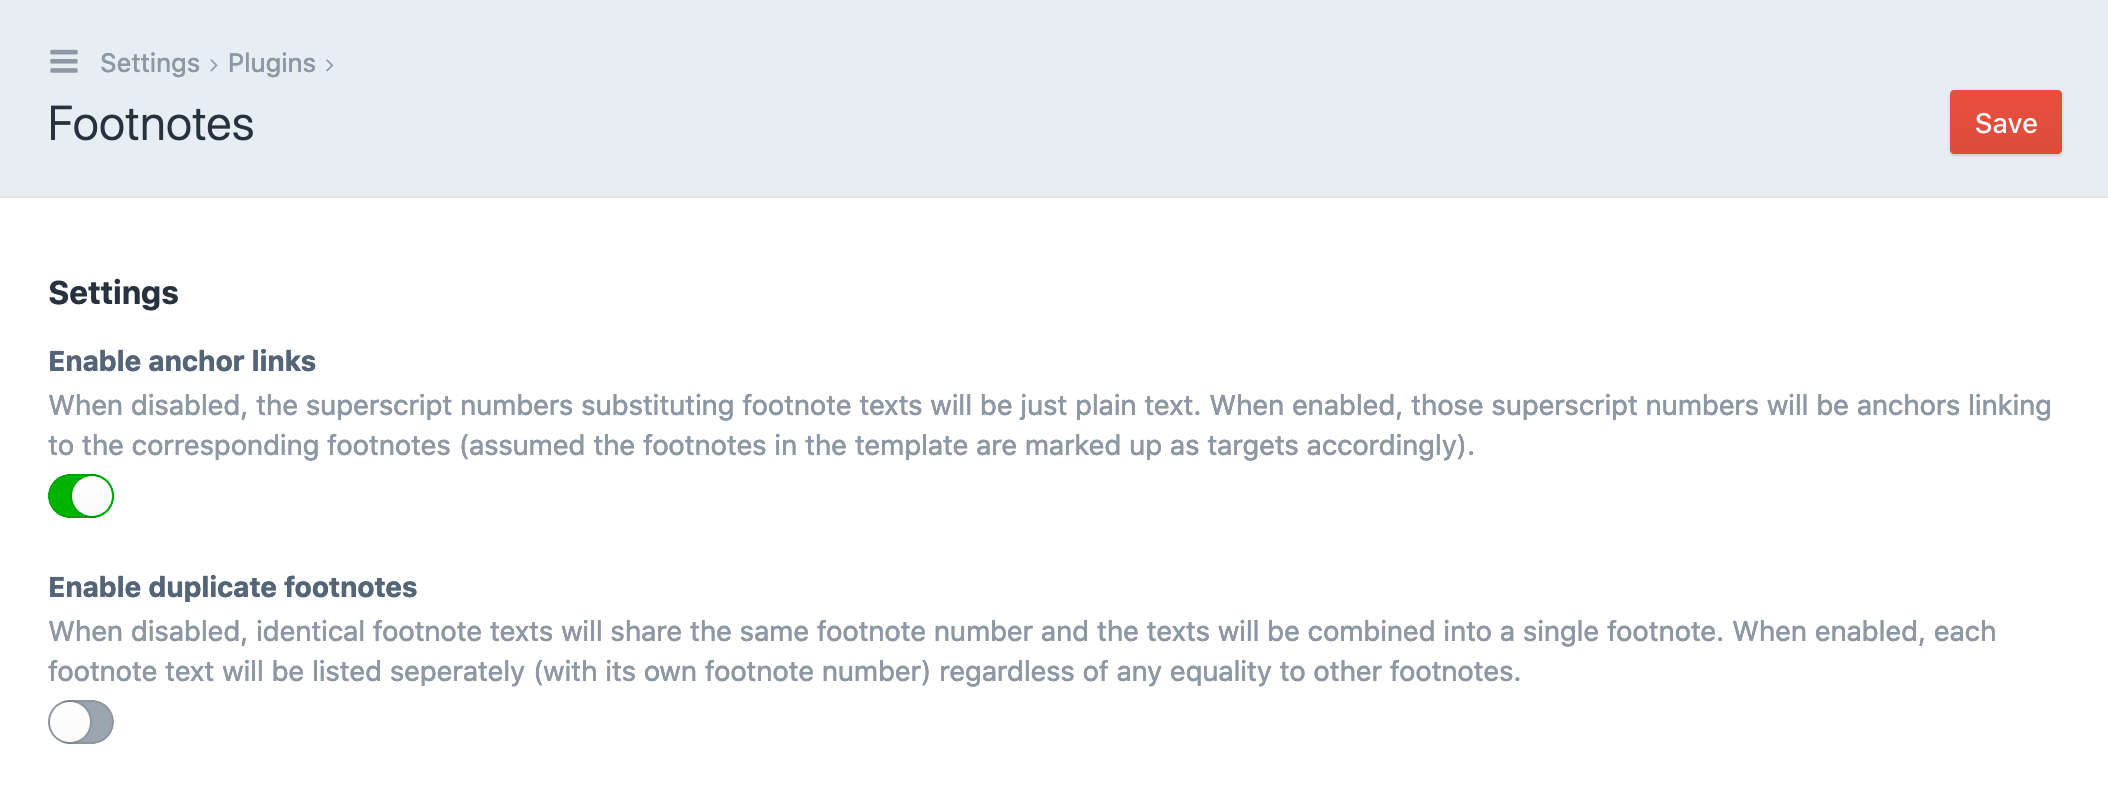 Screenshot of the Footnotes plugin's settings page